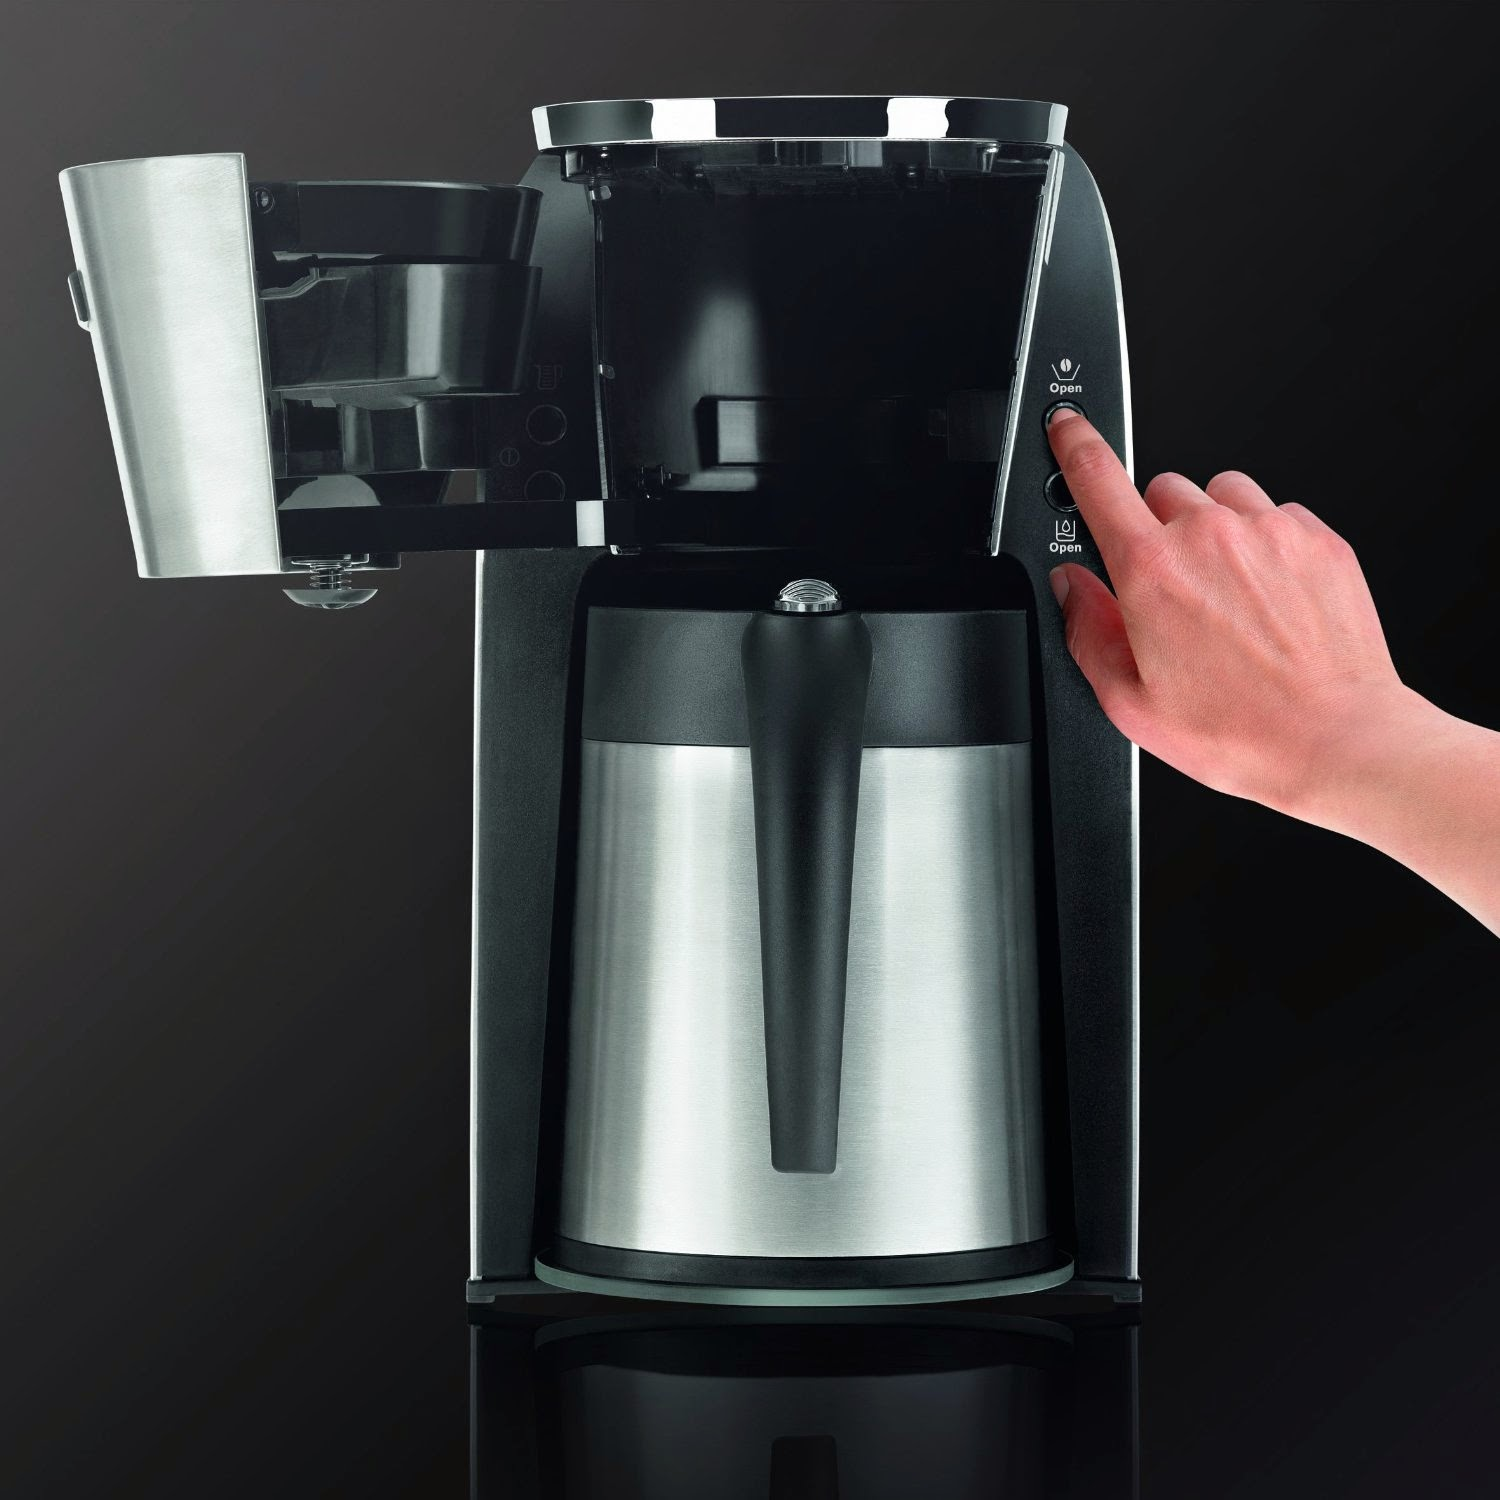 Stainless steel stovetop espresso maker 10 cup - What Is The Best 10 Cup Coffee Maker 2016